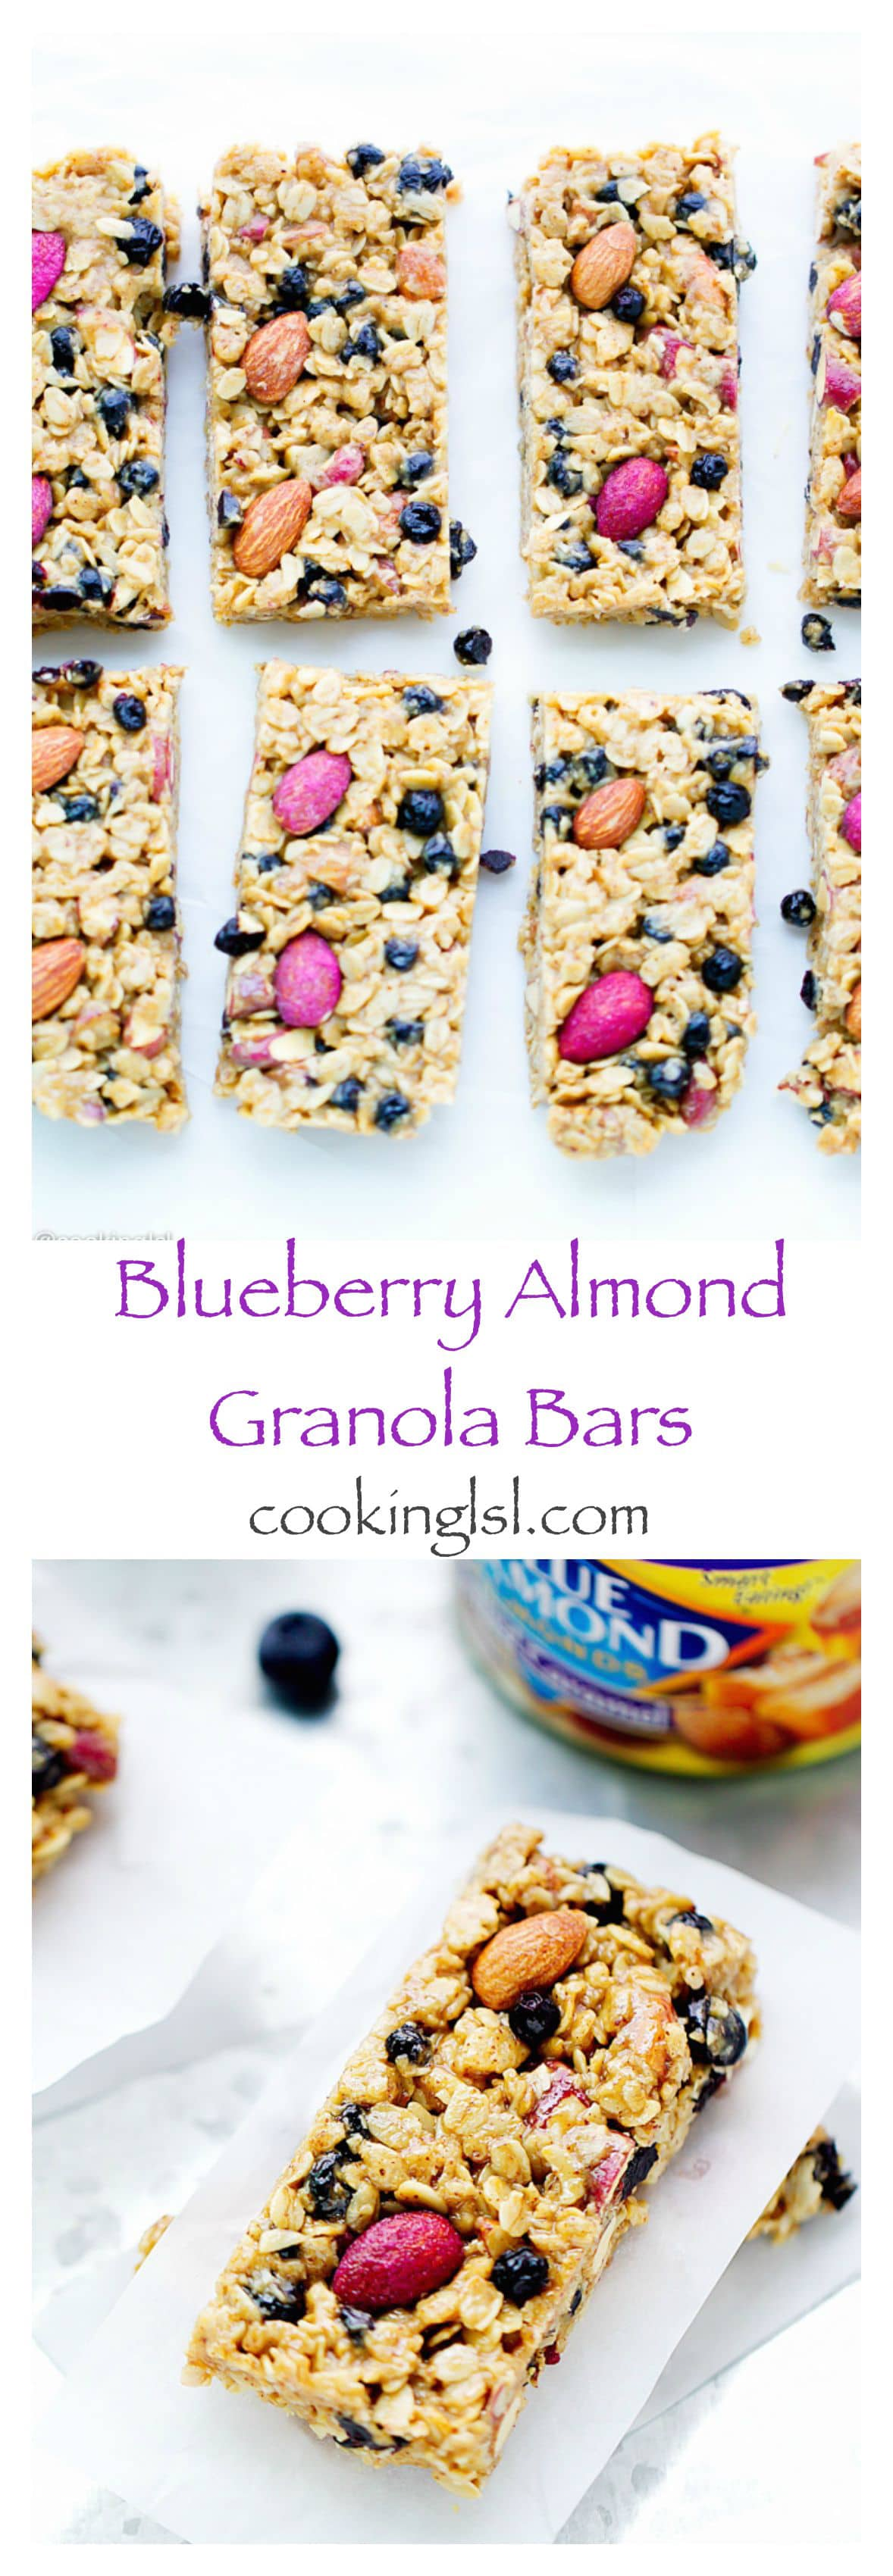 blueberry-almond-no-bake-granola-bars-recipe